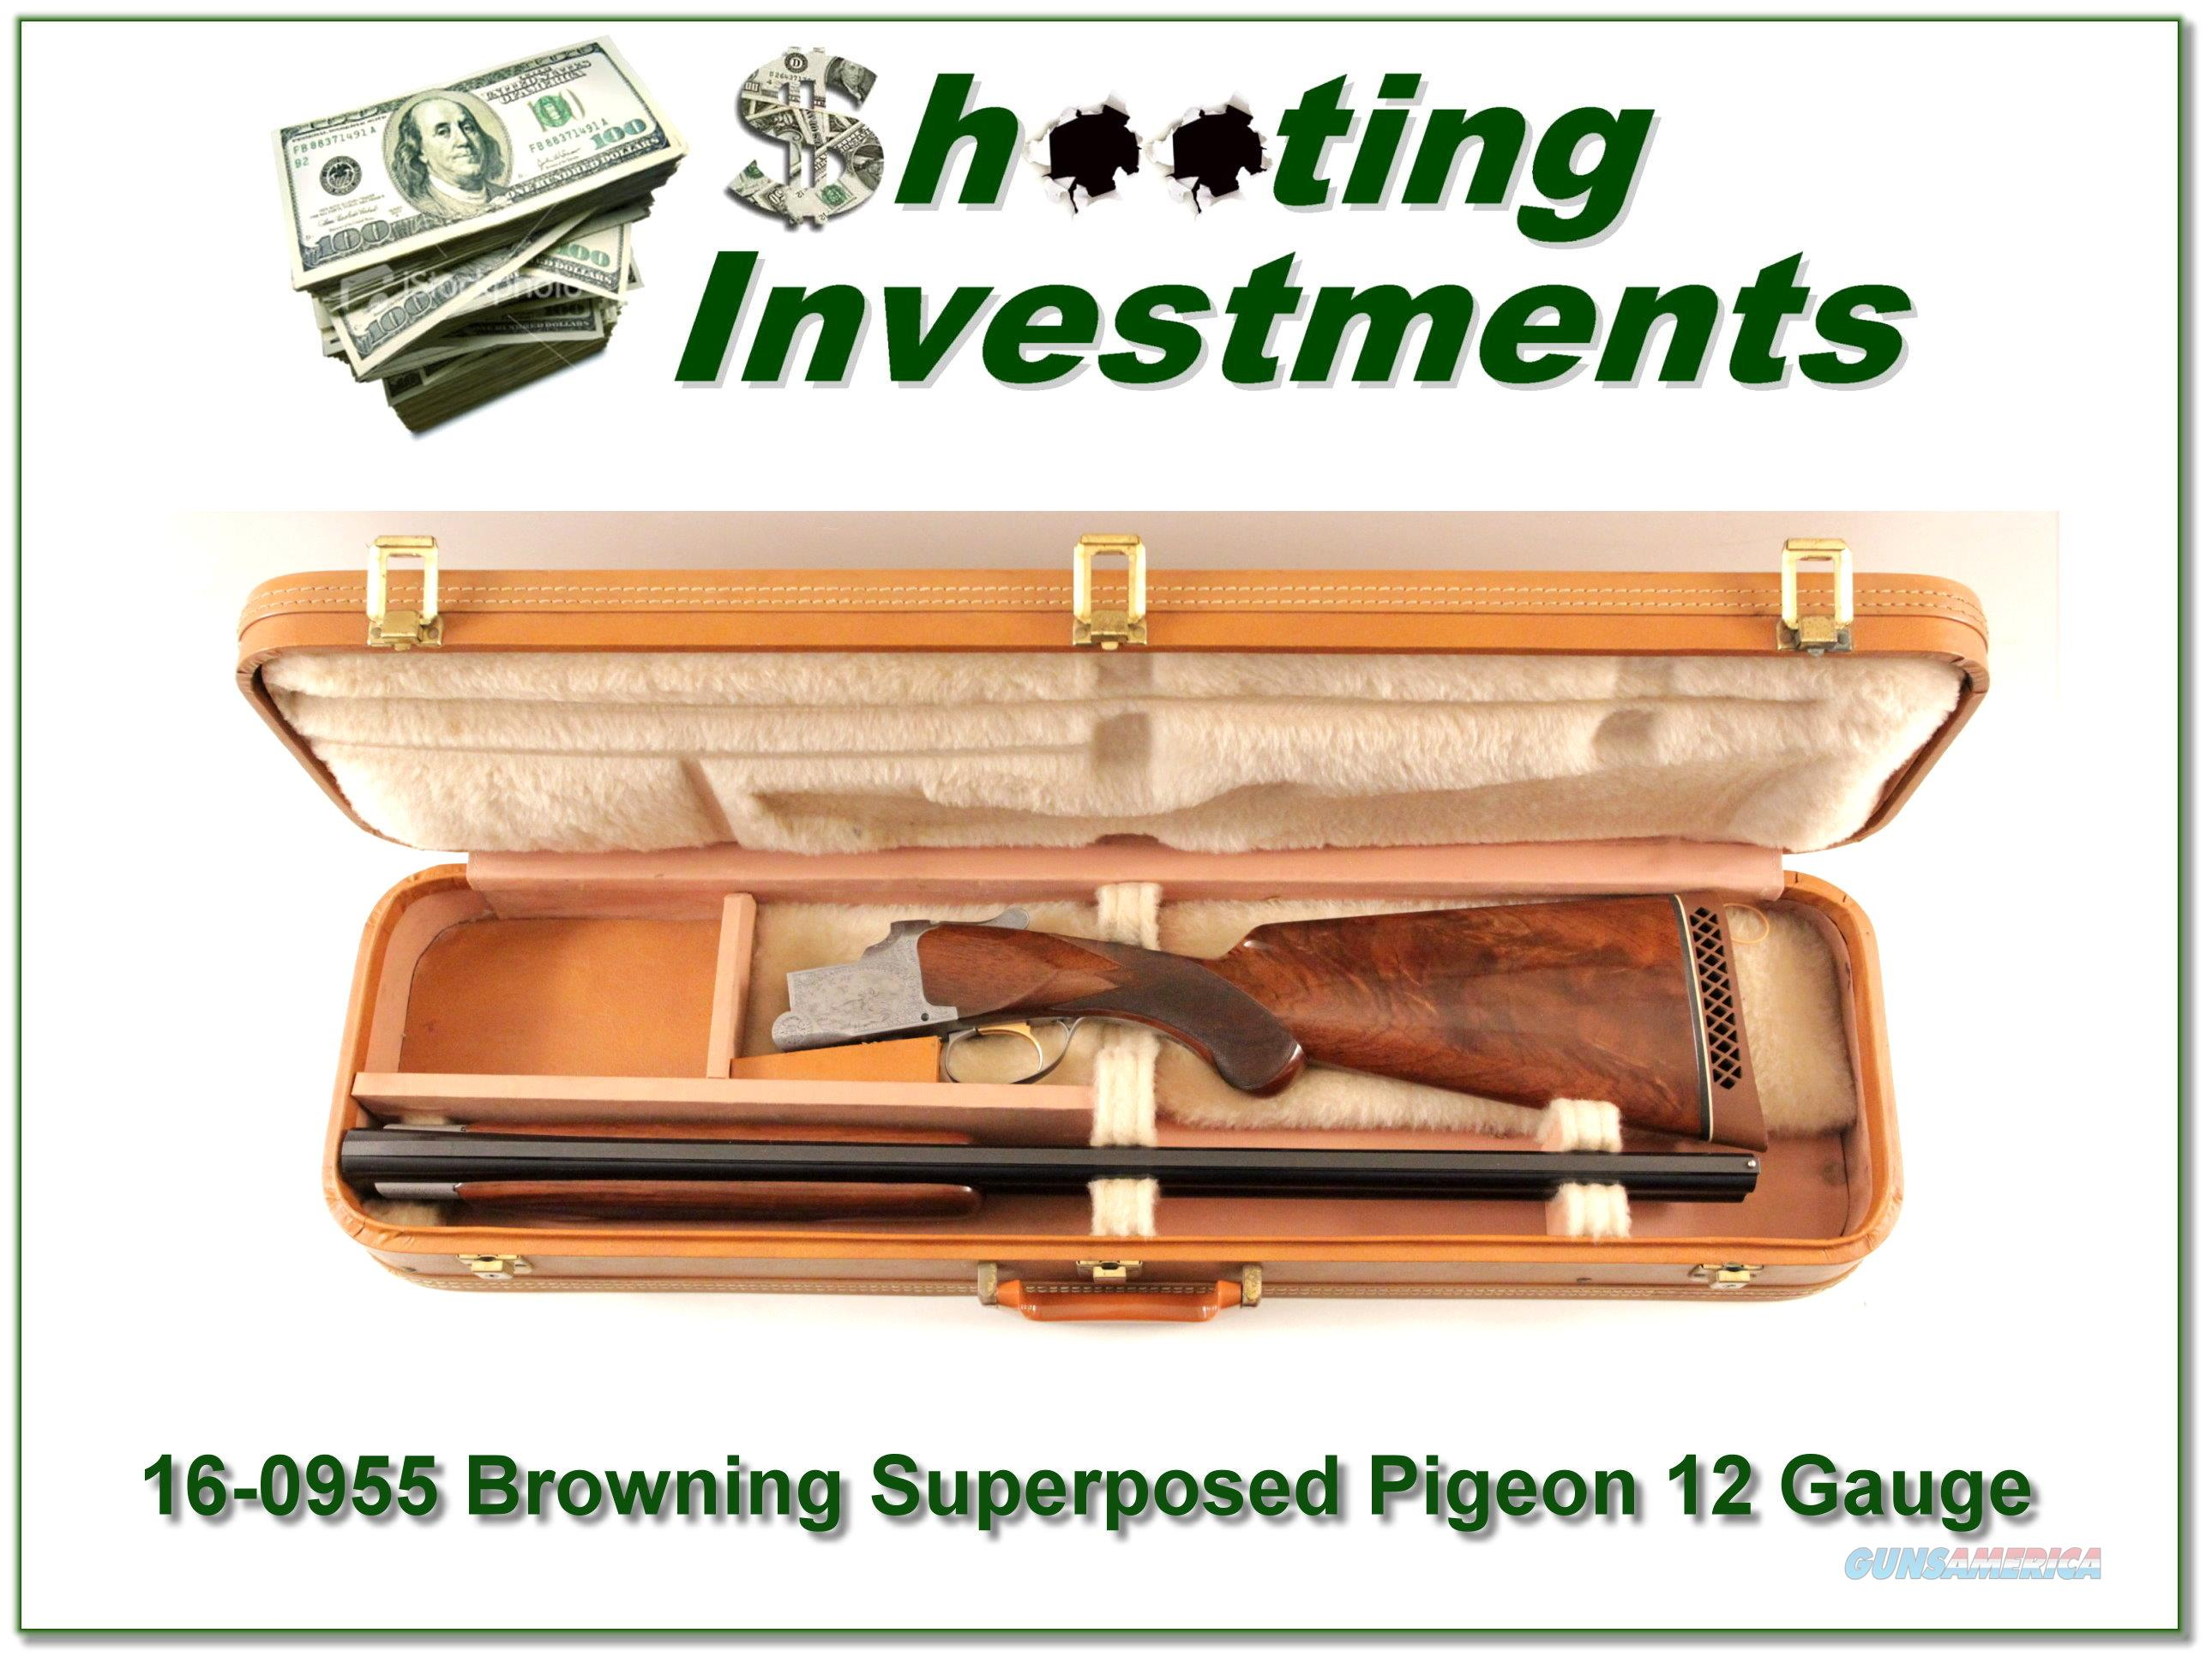 Browning 1961 Superposed Pigeon Grade 12 Gauge ANIC  Guns > Shotguns > Browning Shotguns > Over Unders > Belgian Manufacture